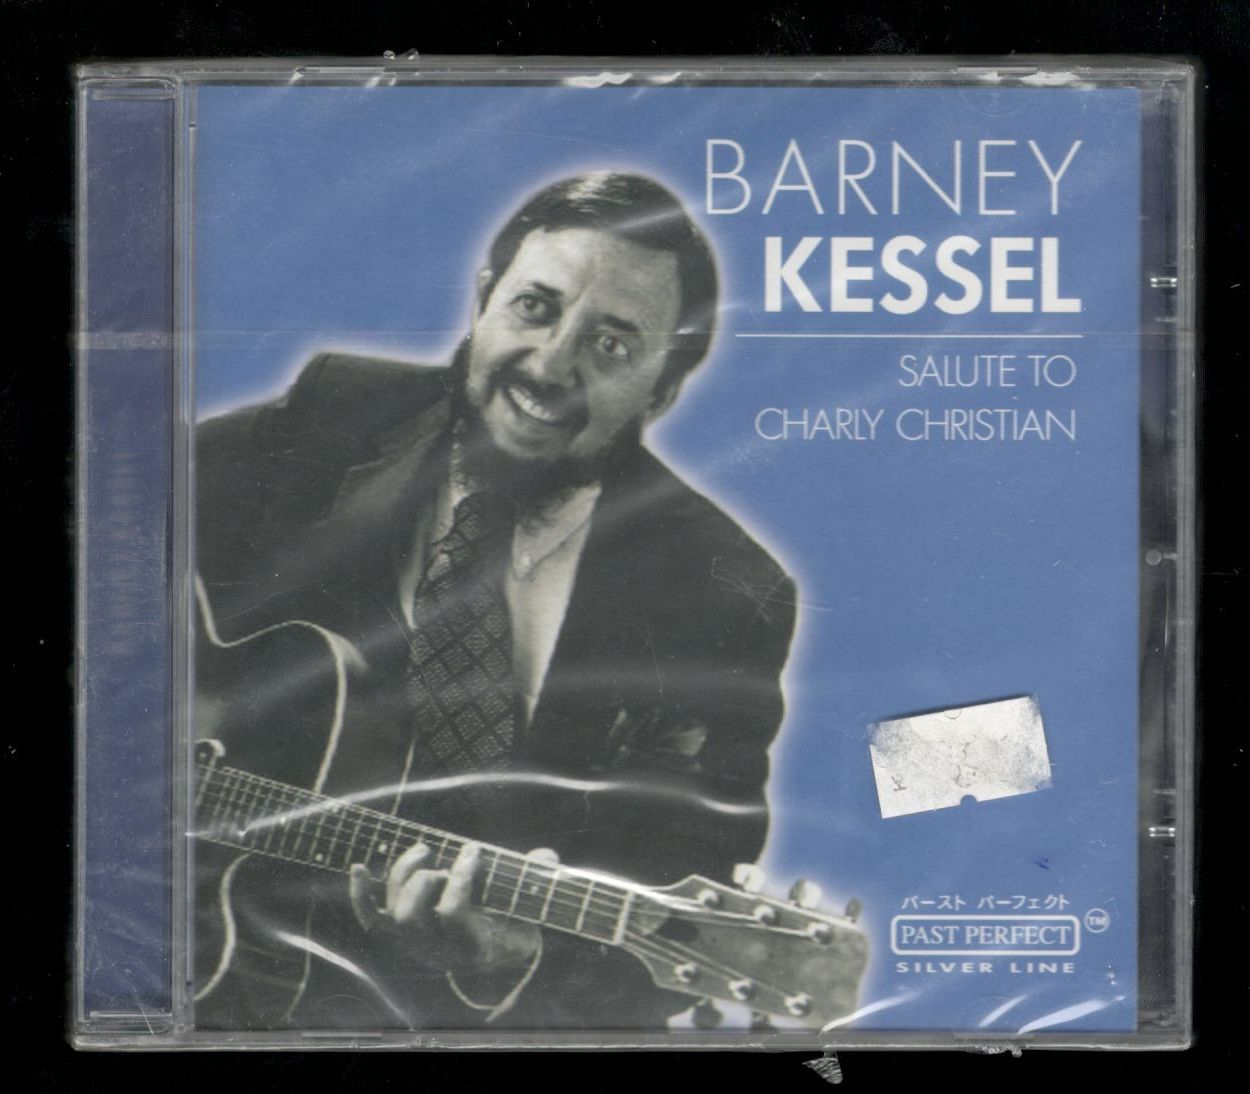 Barney Kessel - Salute to Charly Christian (CD)